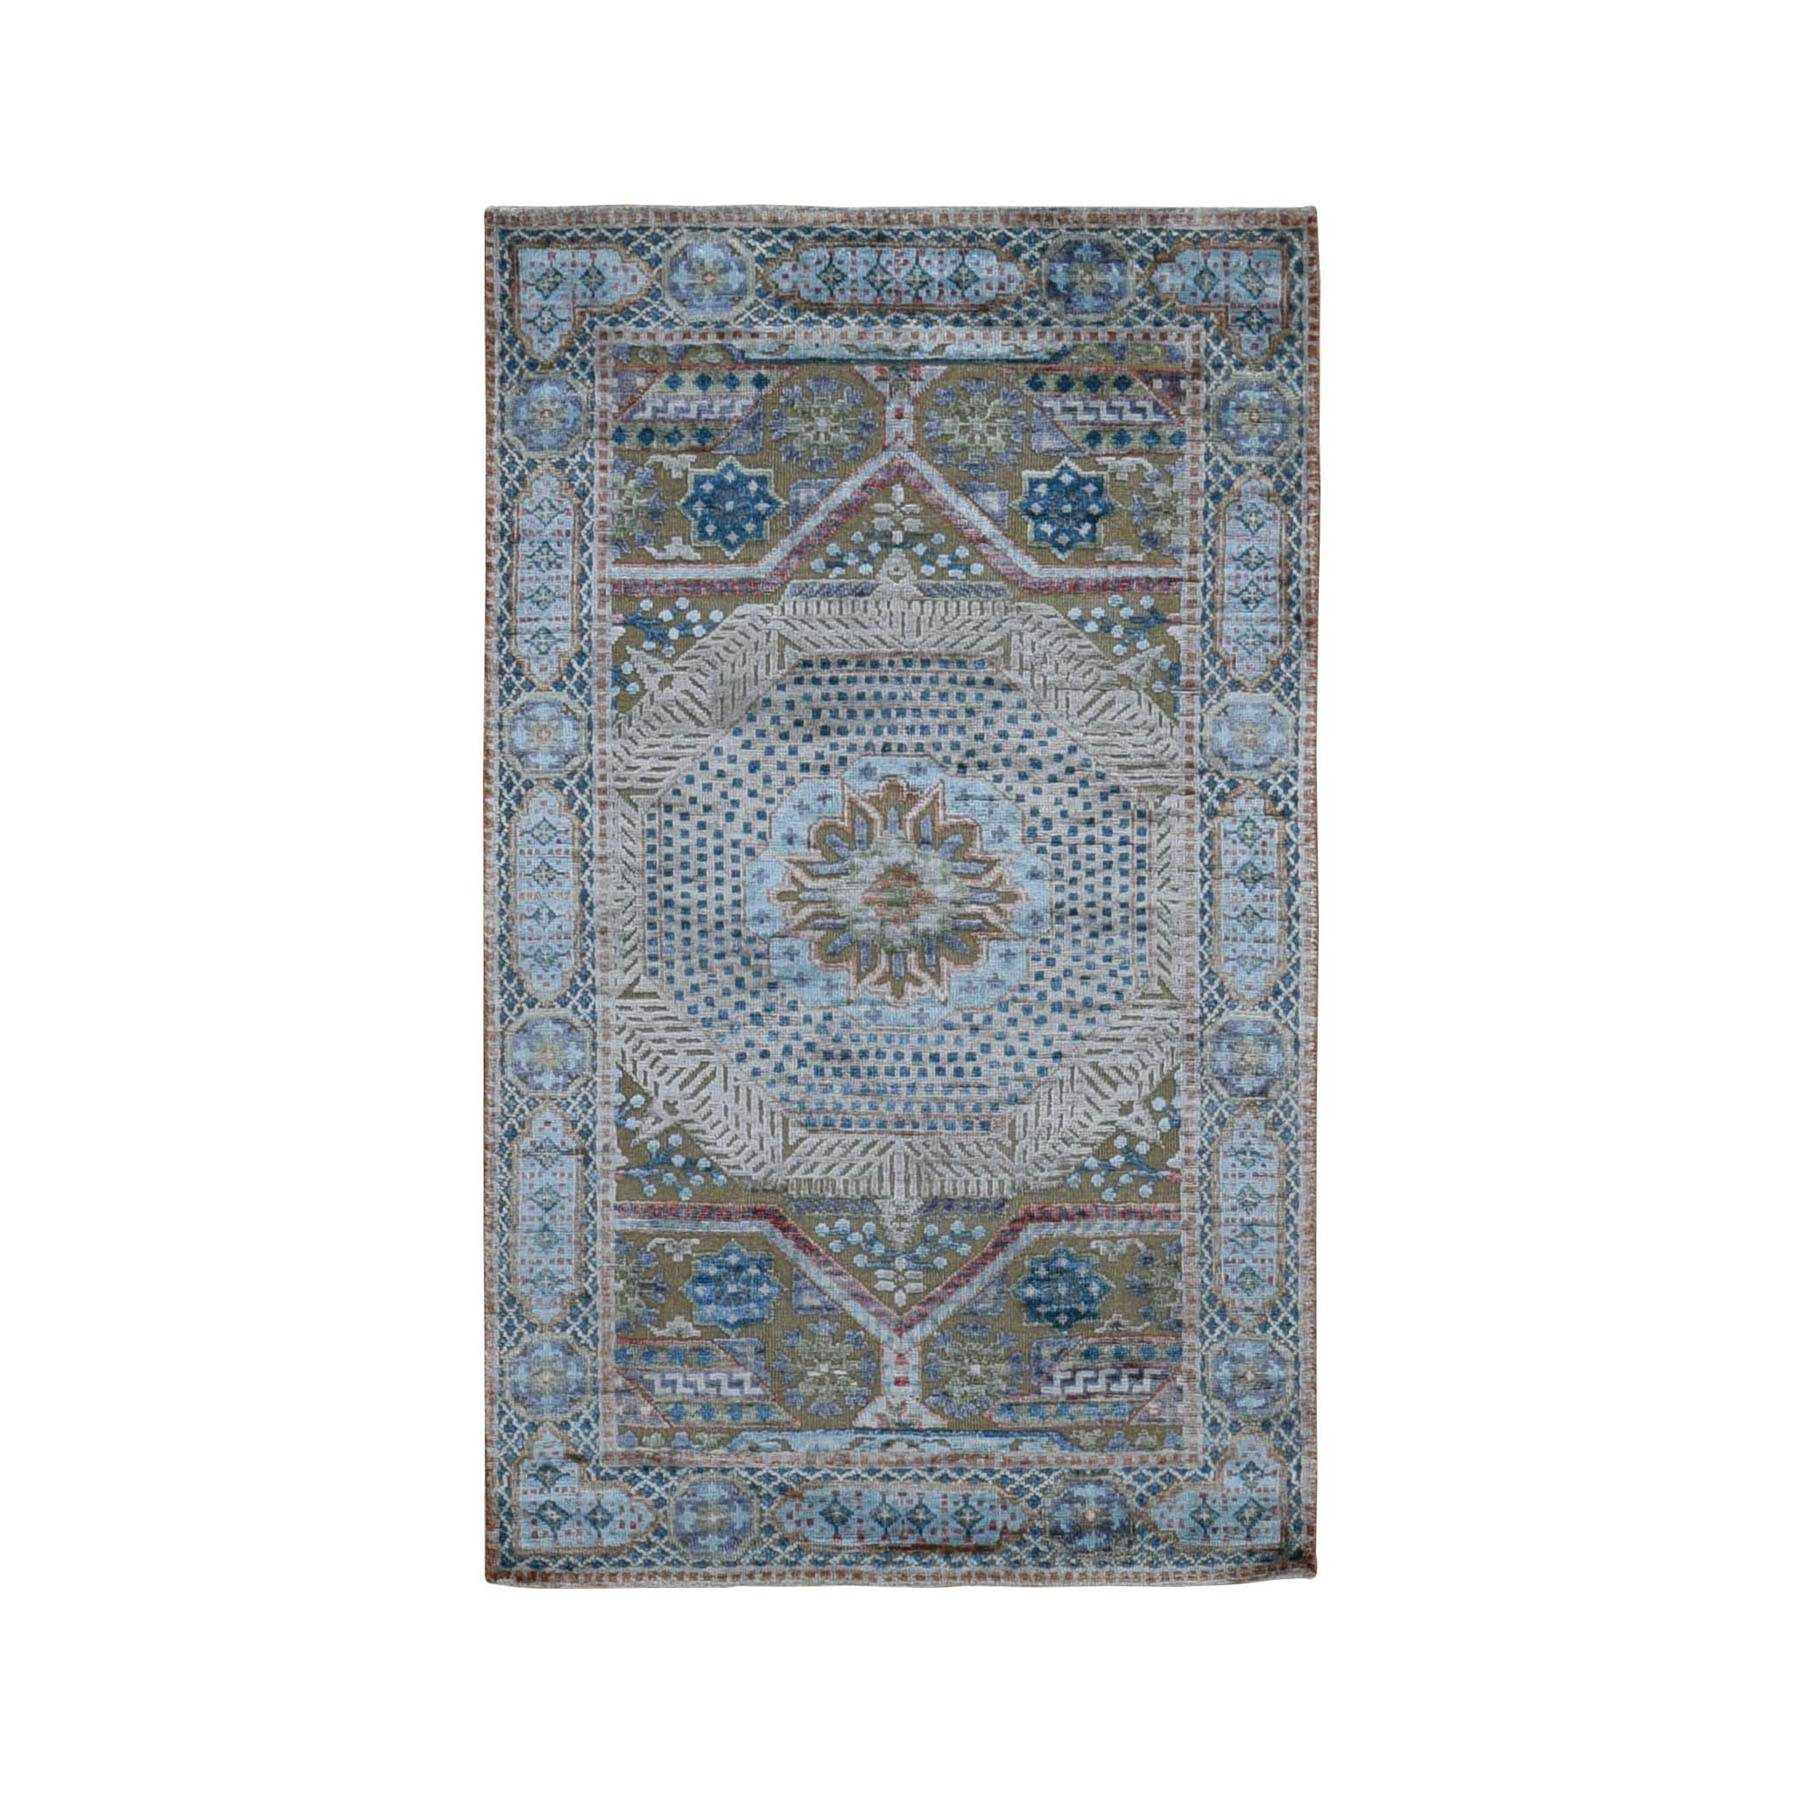 3'x5' Blue Silk With Textured Wool Mamluk Design Hand knotted Oriental Rug